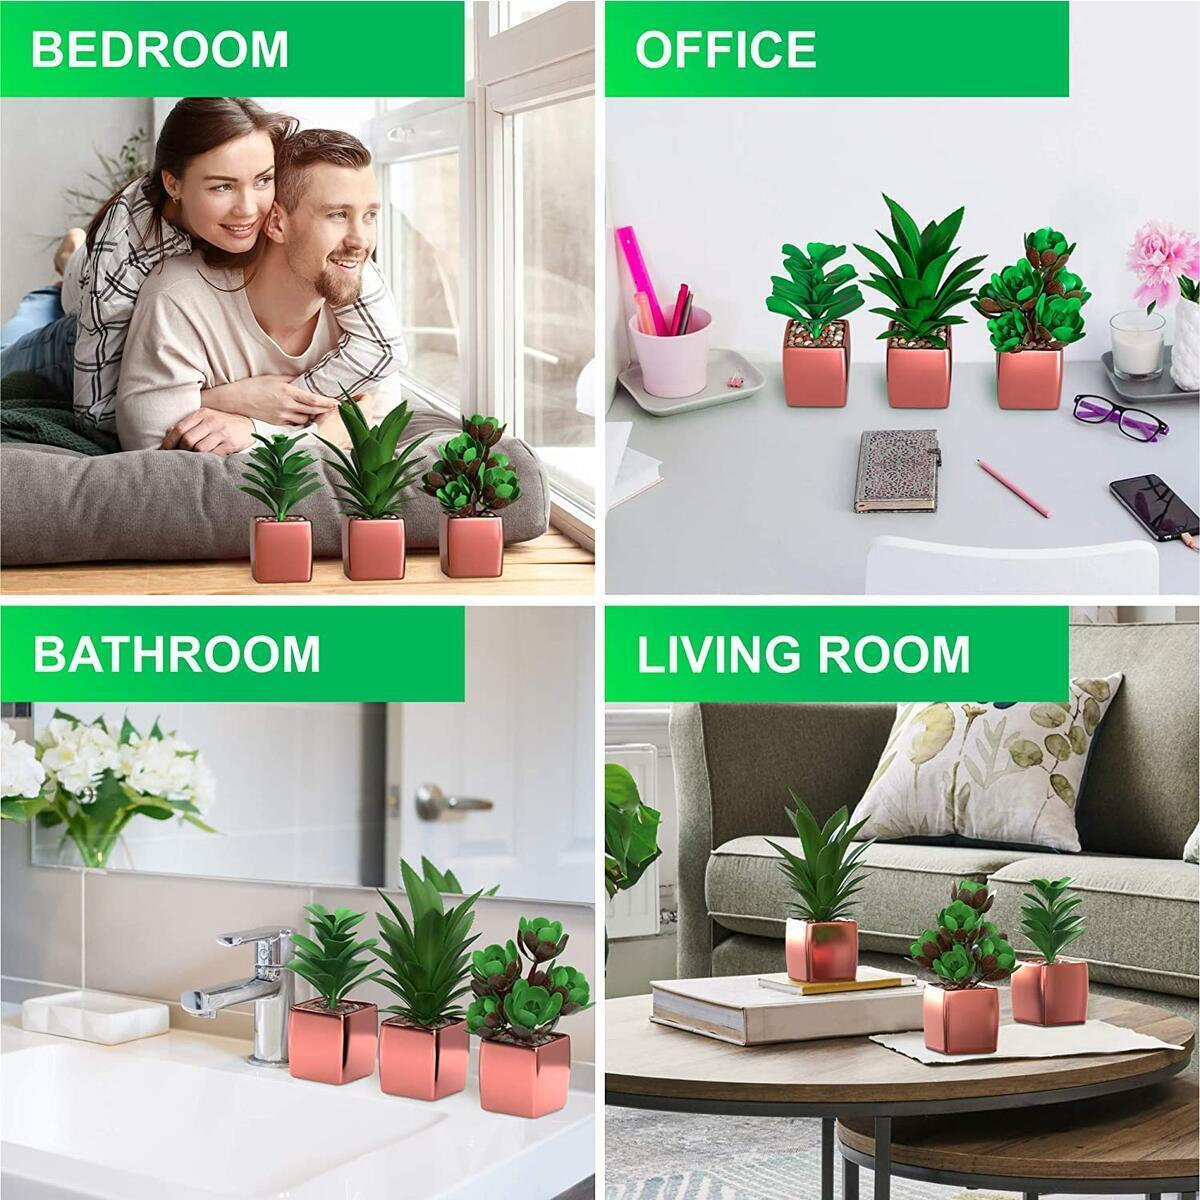 Faux Succulent Fake Plants in Rose Gold Pots | Office Décor for Women Desk | Set of 3 Small Realistic Artificial Succulents | Aesthetic Room Bedroom & Bathroom Decor